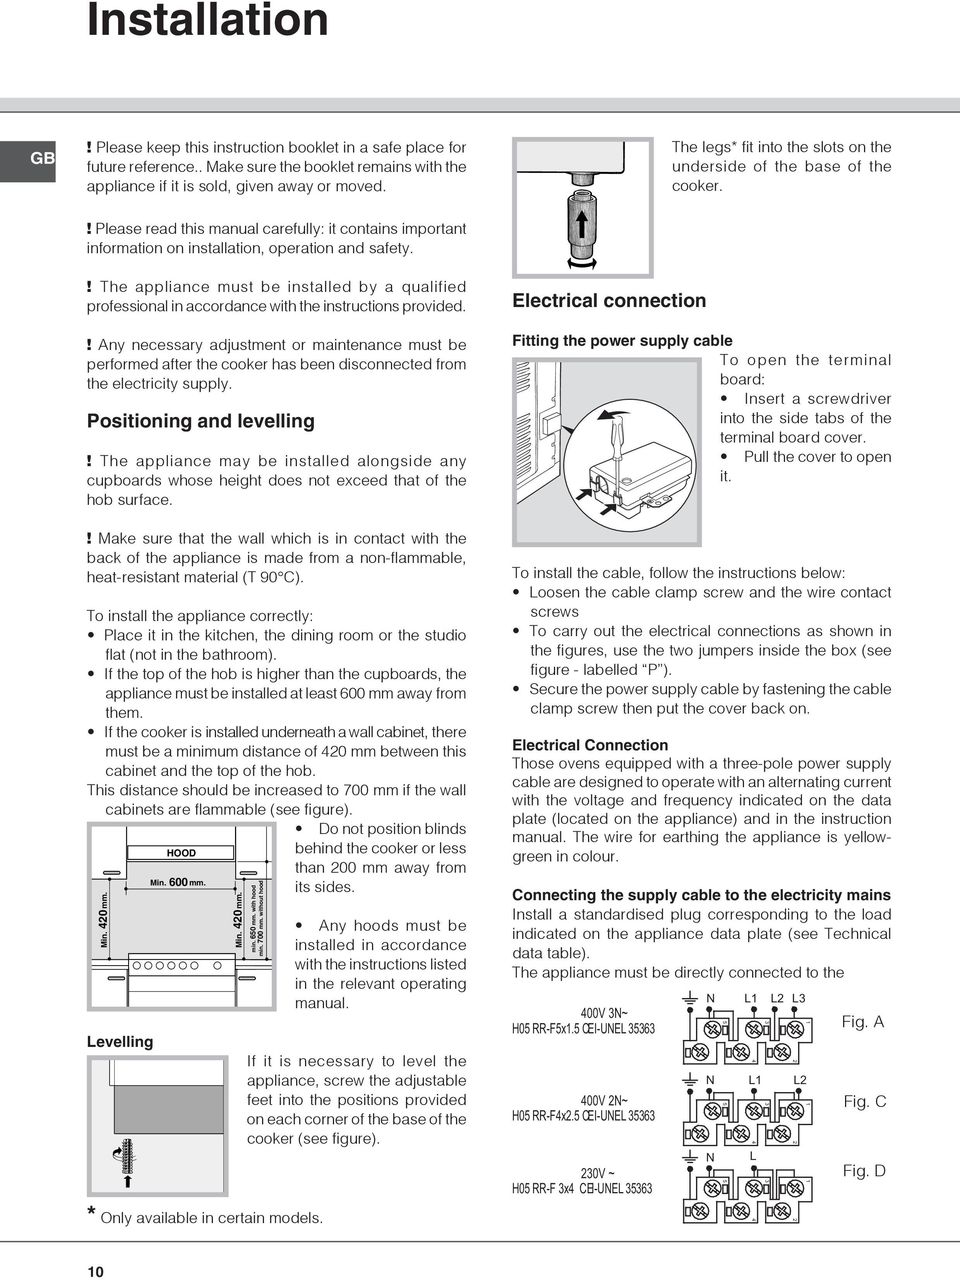 ! Please read this manual carefully: it contains important information on installation, operation and safety.